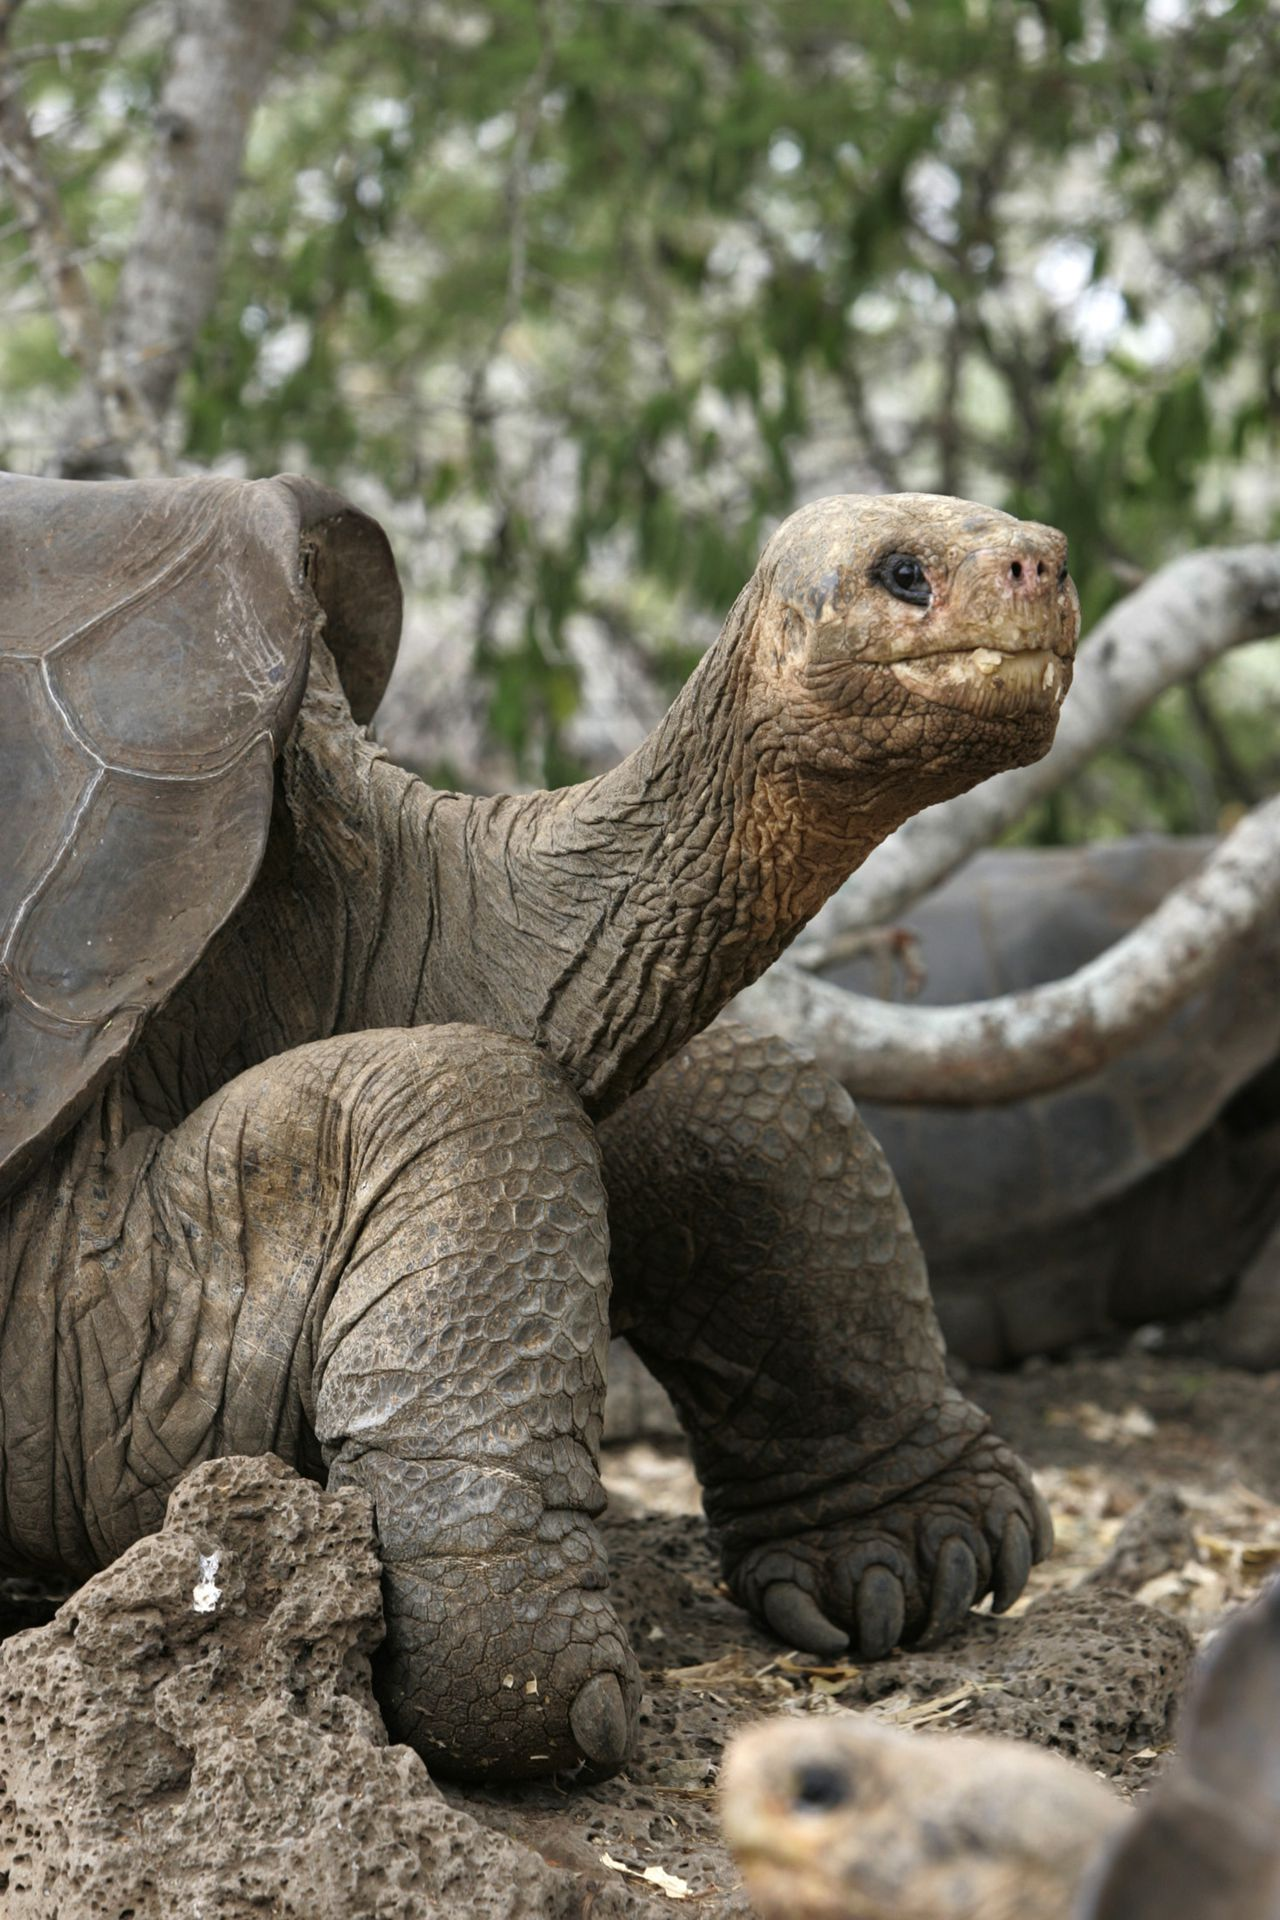 """FOTO REUTERS George the giant tortoise is seen at the national park on the Galapagos islands in this April 29, 2007 file photo. While scientists search for a mate for """"Lonesome George"""" -- the last known survivor of a species of Galapagos tortoise -- some say the effort to fend off extinction may be in vain. Even if a mate is found, George has not been interested in reproducing in the past and may not know how, former keepers and others who have worked with him said. To match feature TORTOISE-GEORGE/ REUTERS/Guillermo Granja/Files (ECUADOR)"""